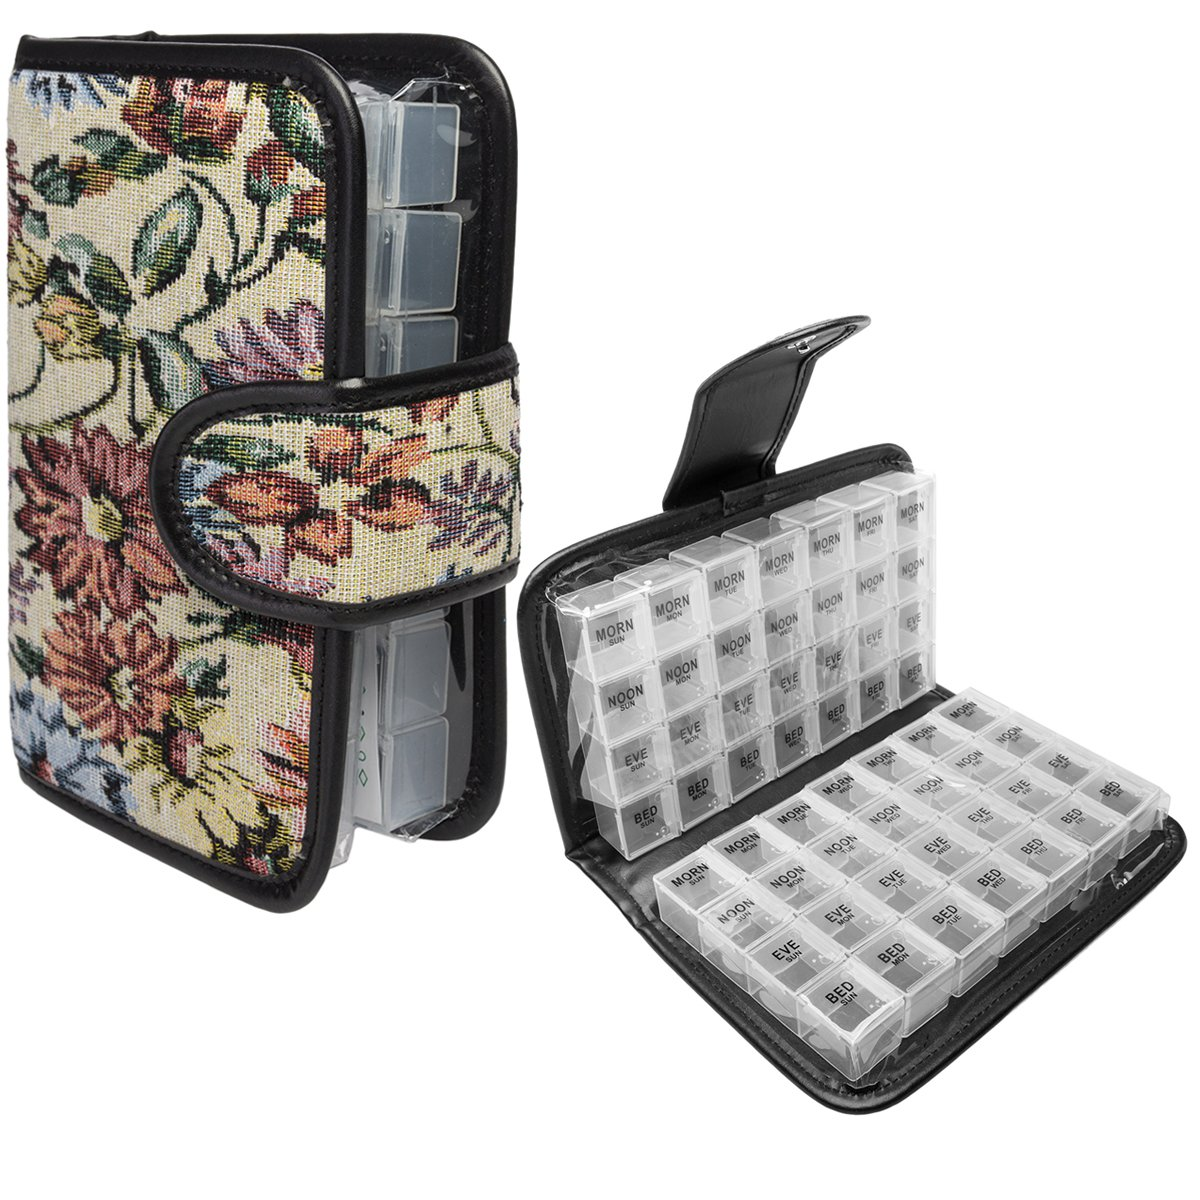 Simply Genius Floral 14 Day Daily Pill Organizer, Portable Locking Travel Case Doses Dispenser, AM/PM, Day & Night, Weekly Pill Box Organizer Case by Simply Genius